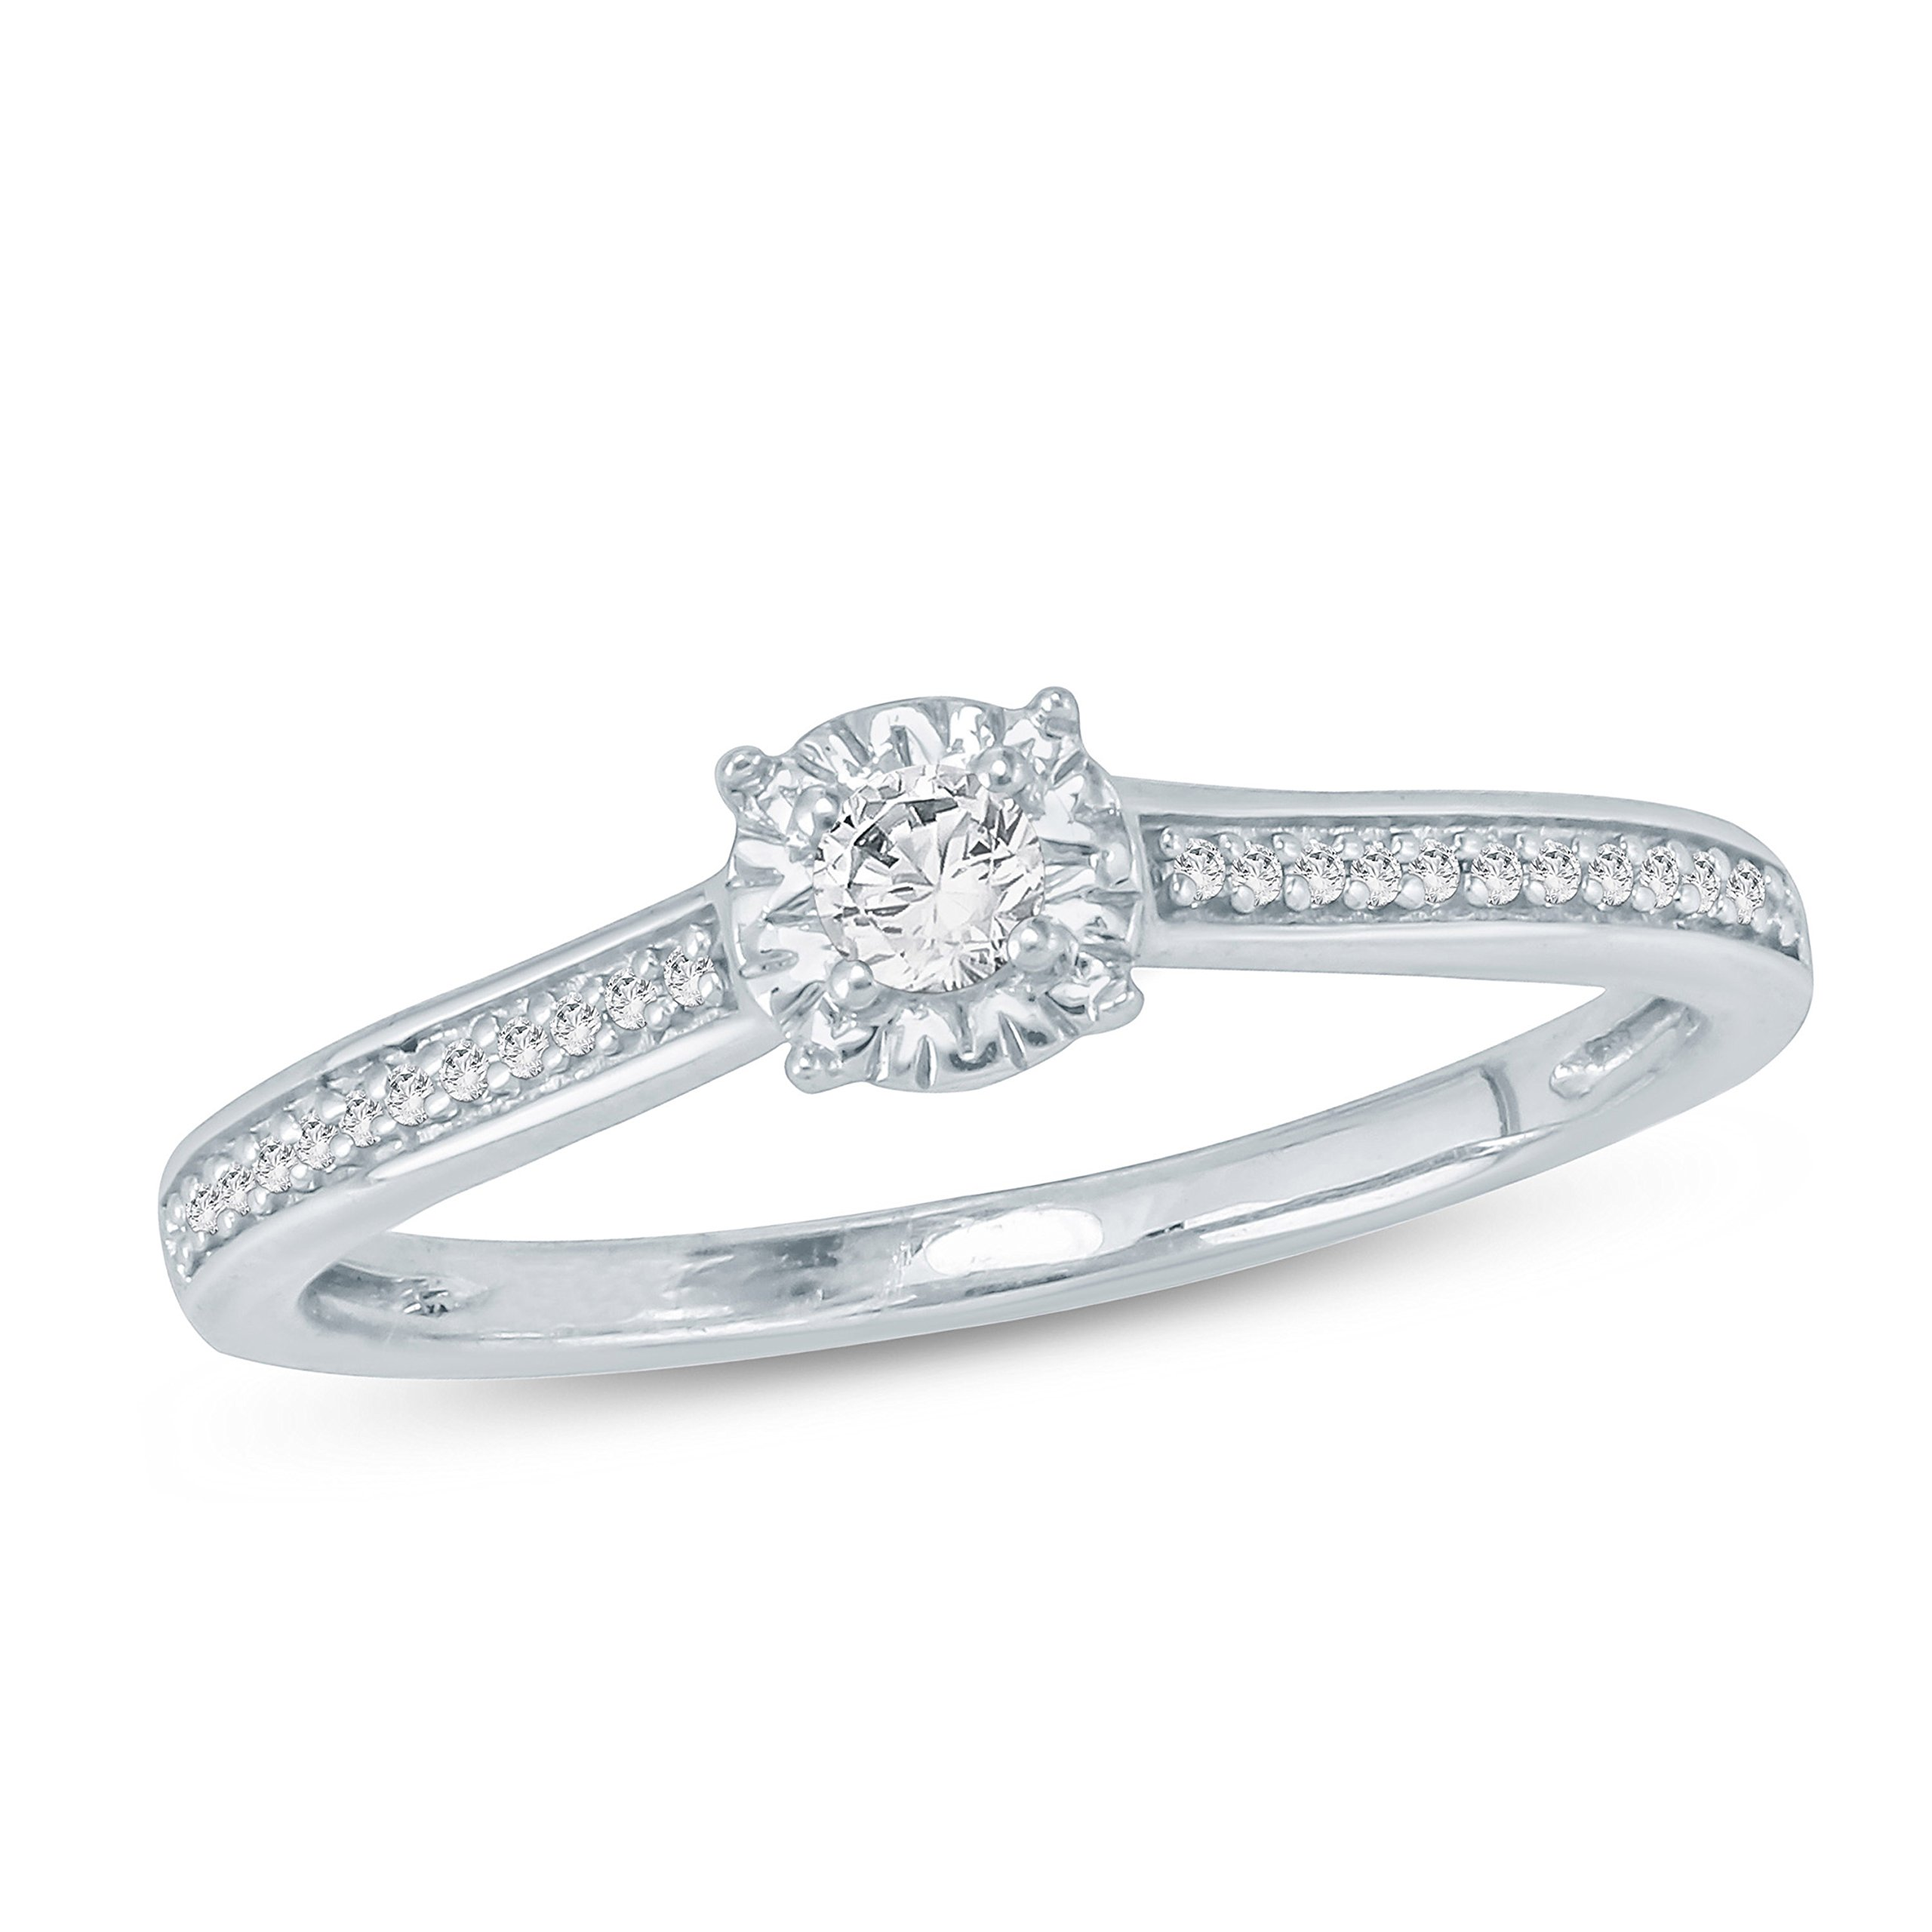 Tesero Mio 10K White Gold 1/6 Carat Round Cut (I-J Color, I2-I3 Clarity) Natural Diamond Promise Ring for Her, US Size 7